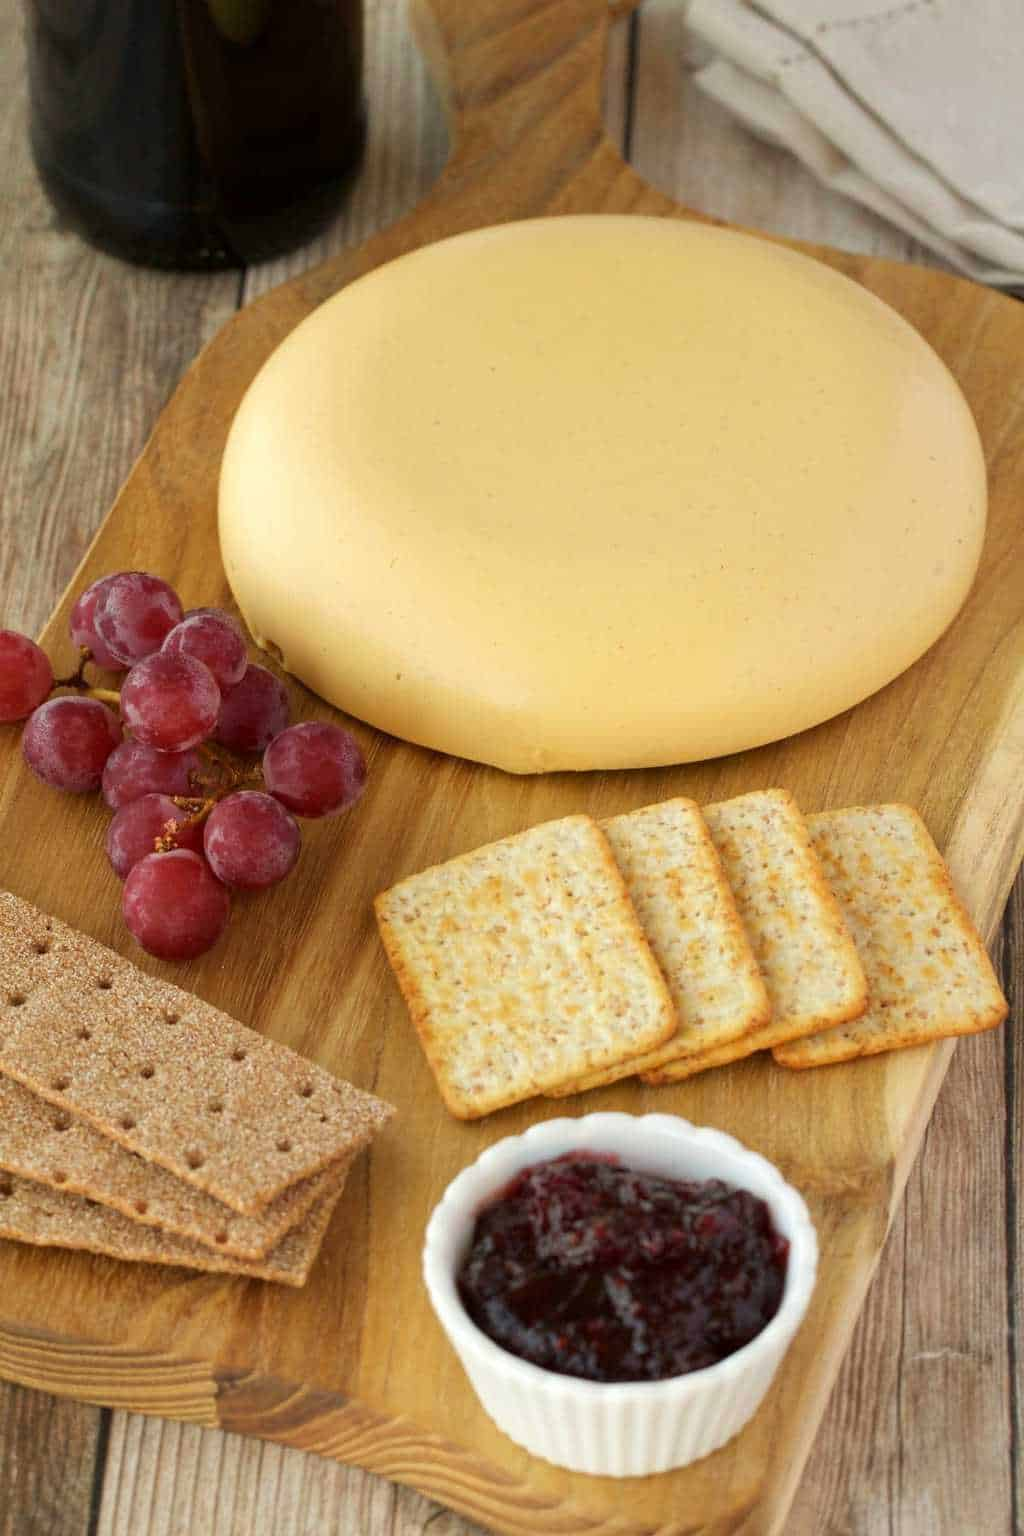 Wheel of vegan cashew cheese on a cheese board with crackers, grapes and jam.